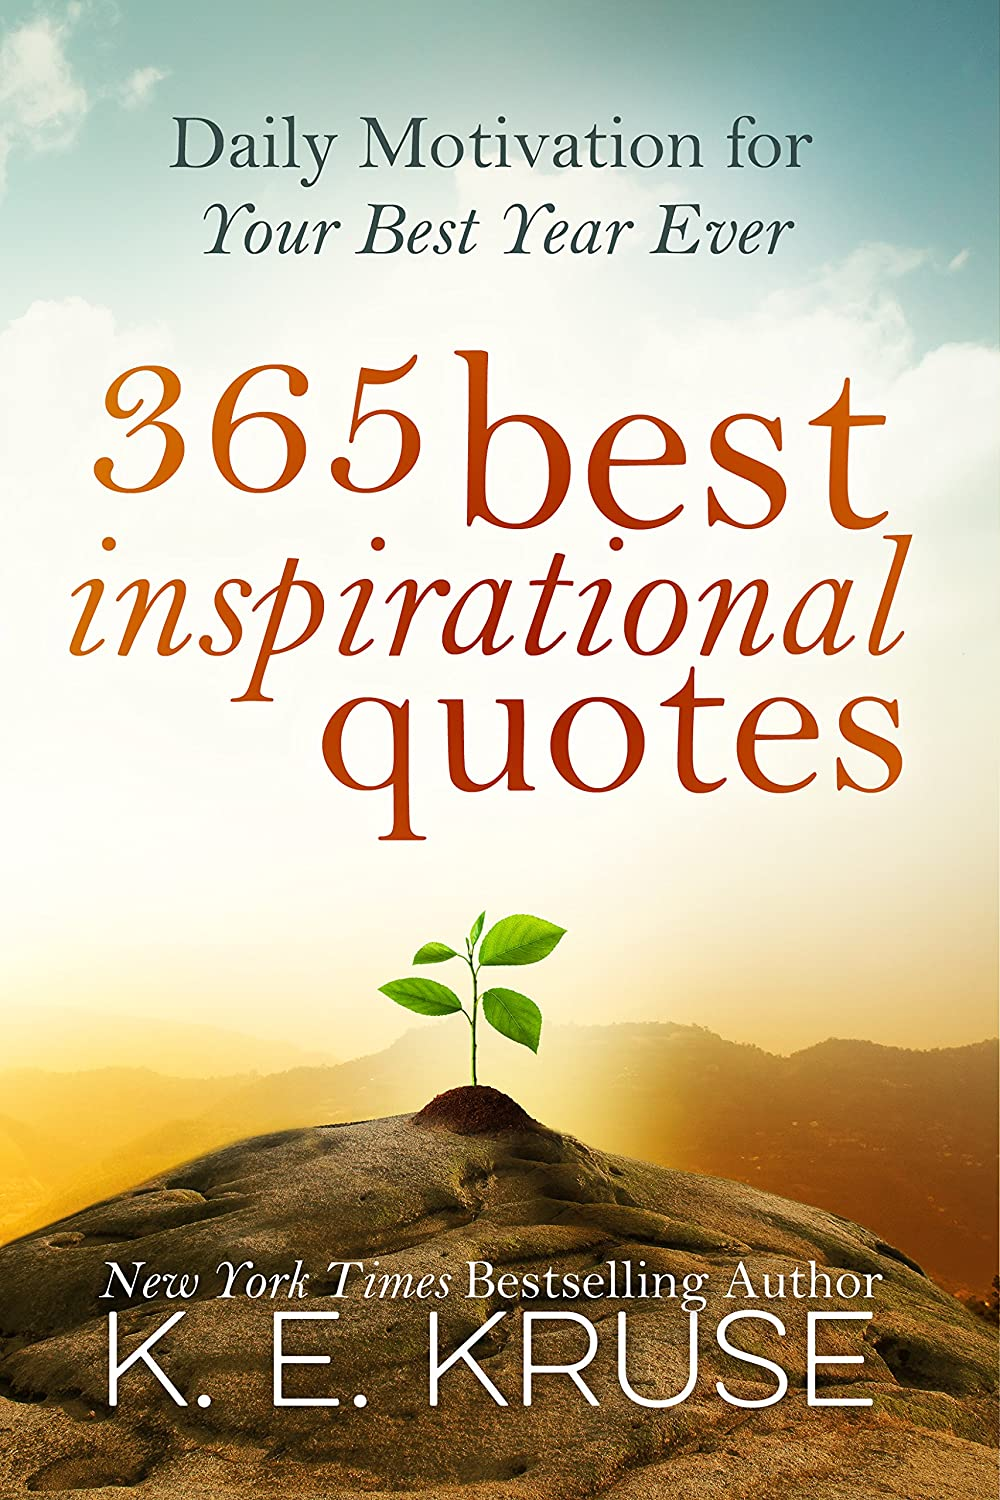 amazon kindle book promotion 365 best inspirational